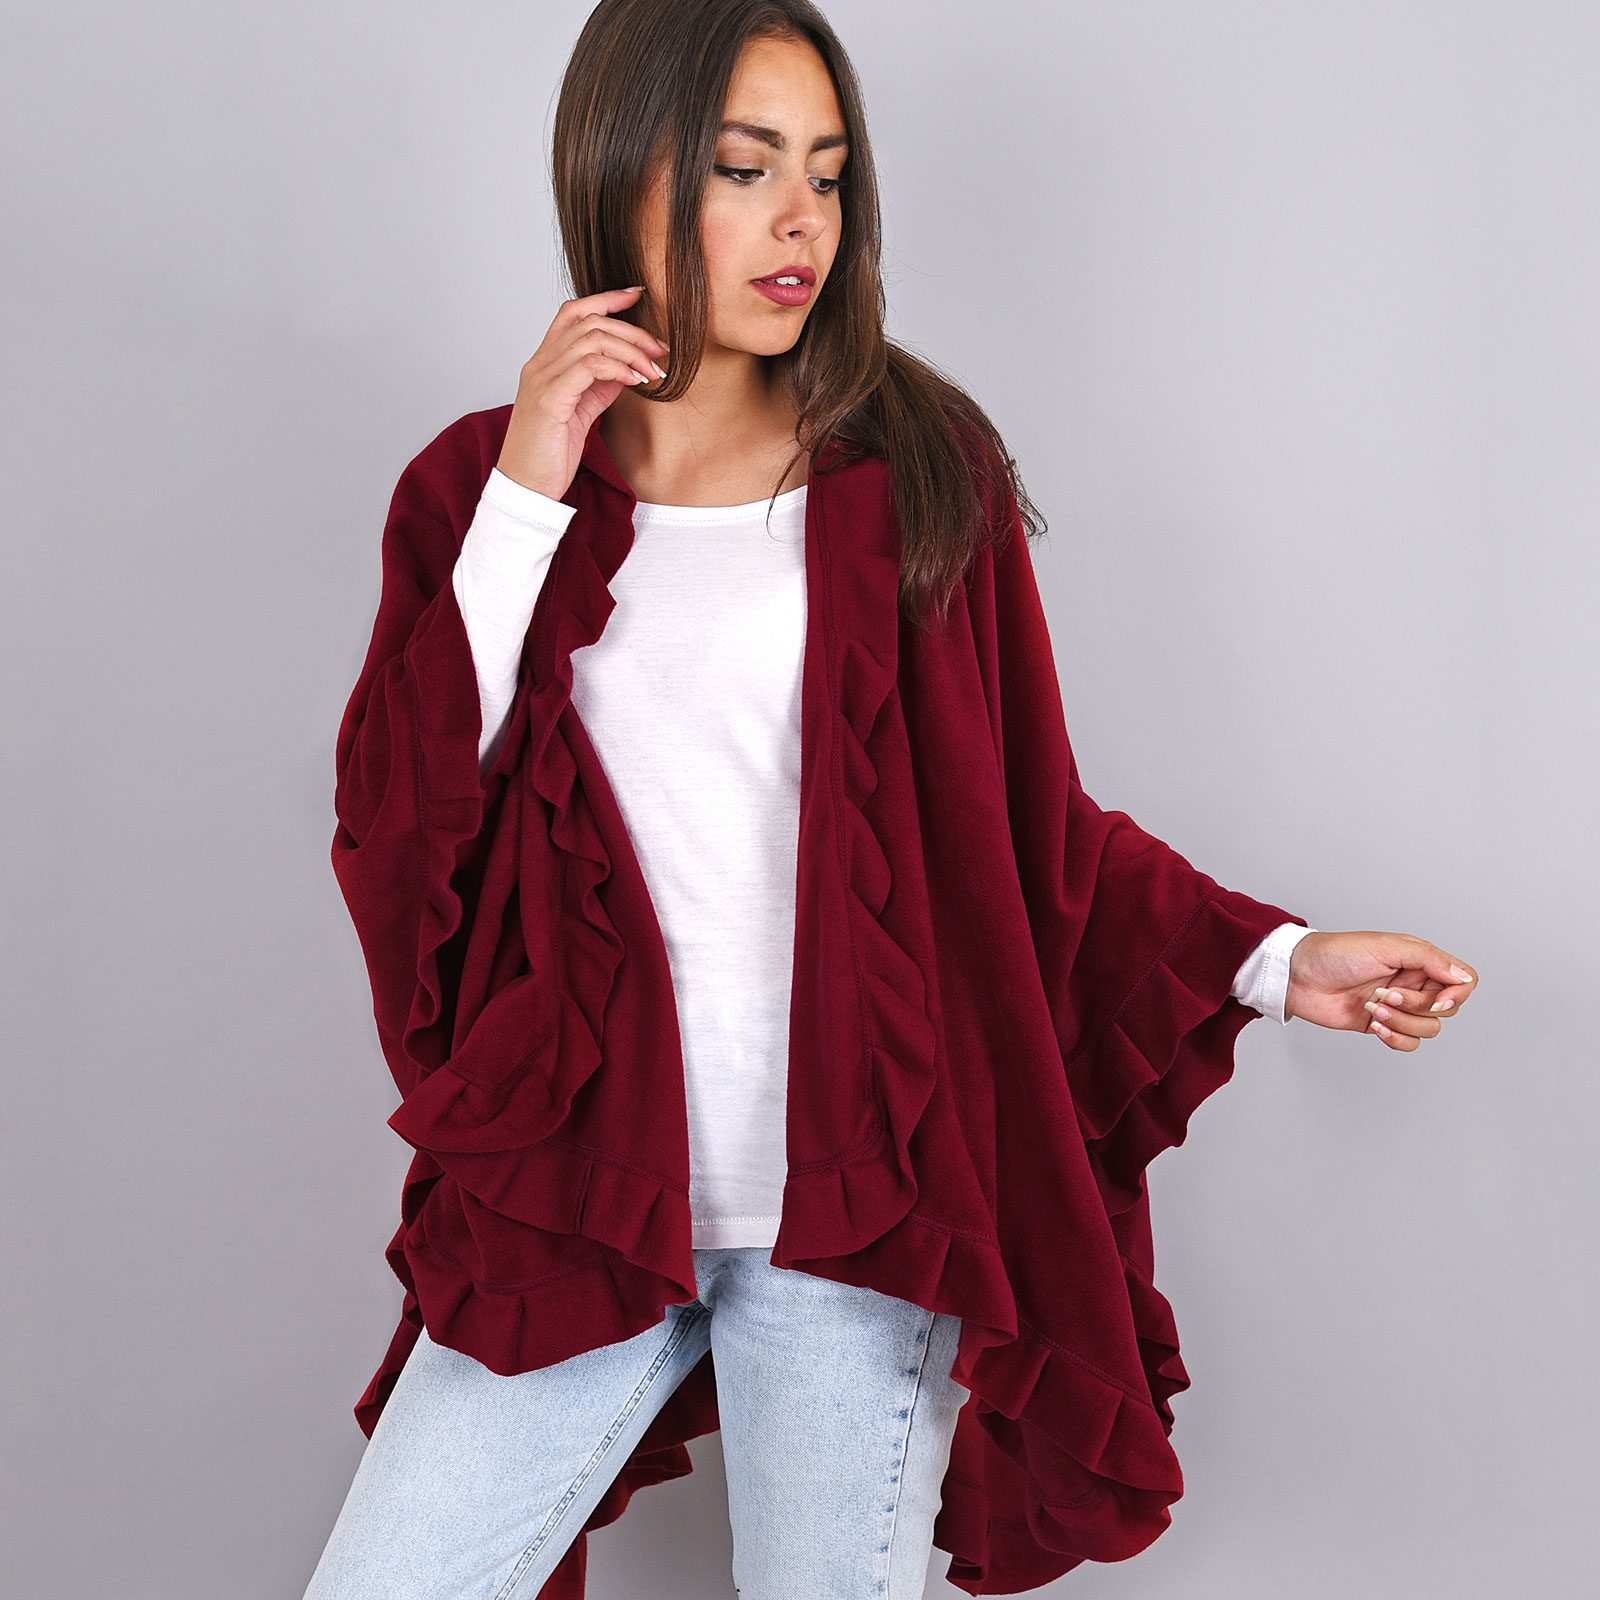 http://lookbook.allee-du-foulard.fr/wp-content/uploads/2018/11/AT-00894-VF16-poncho-cape-polaire-bordeaux-1600x1600.jpg